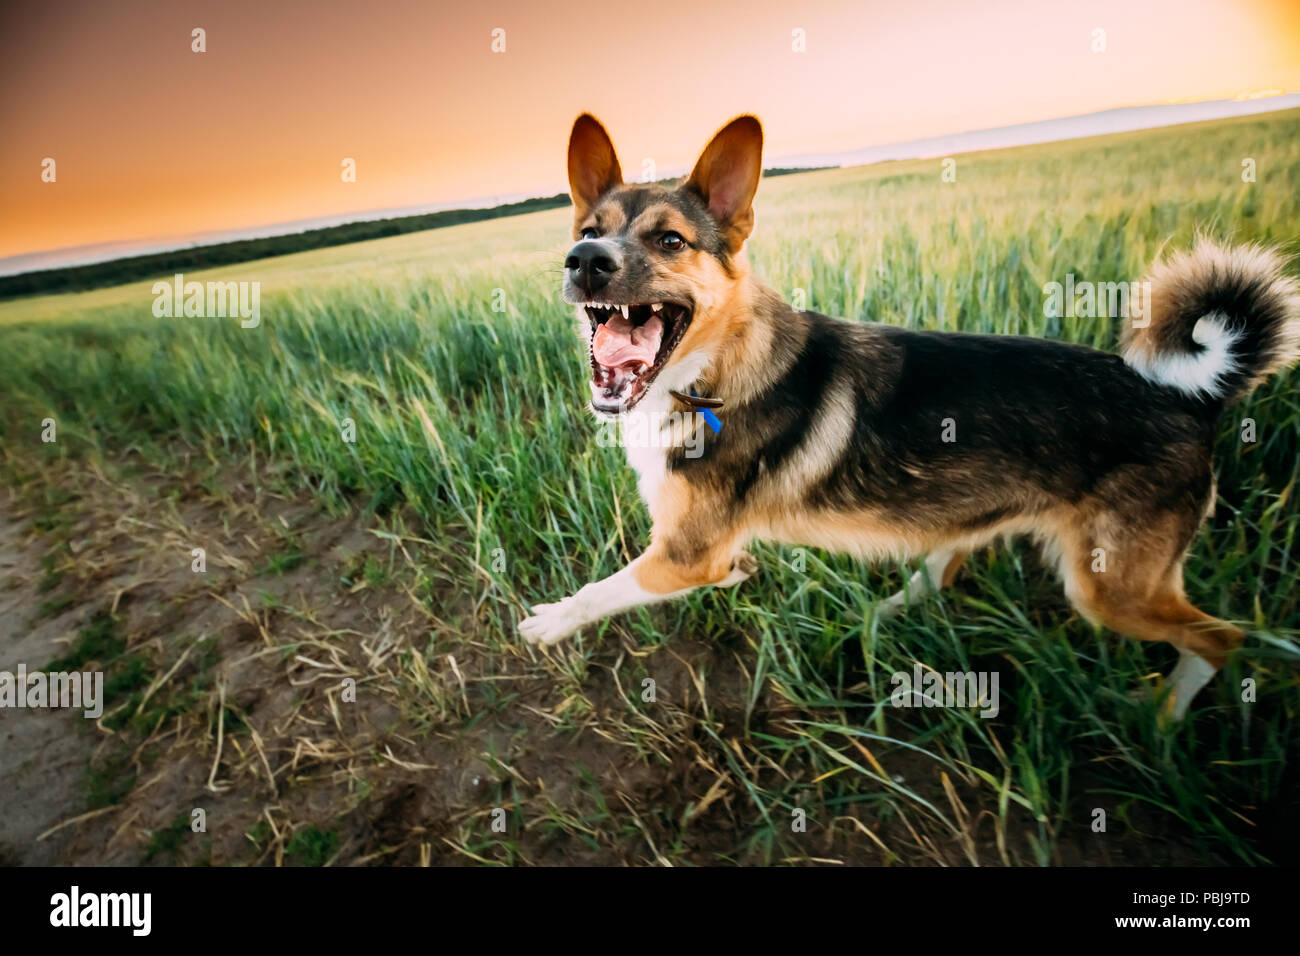 Barking Angry Mixed Breed Dog Running In Road  Through Field - Stock Image